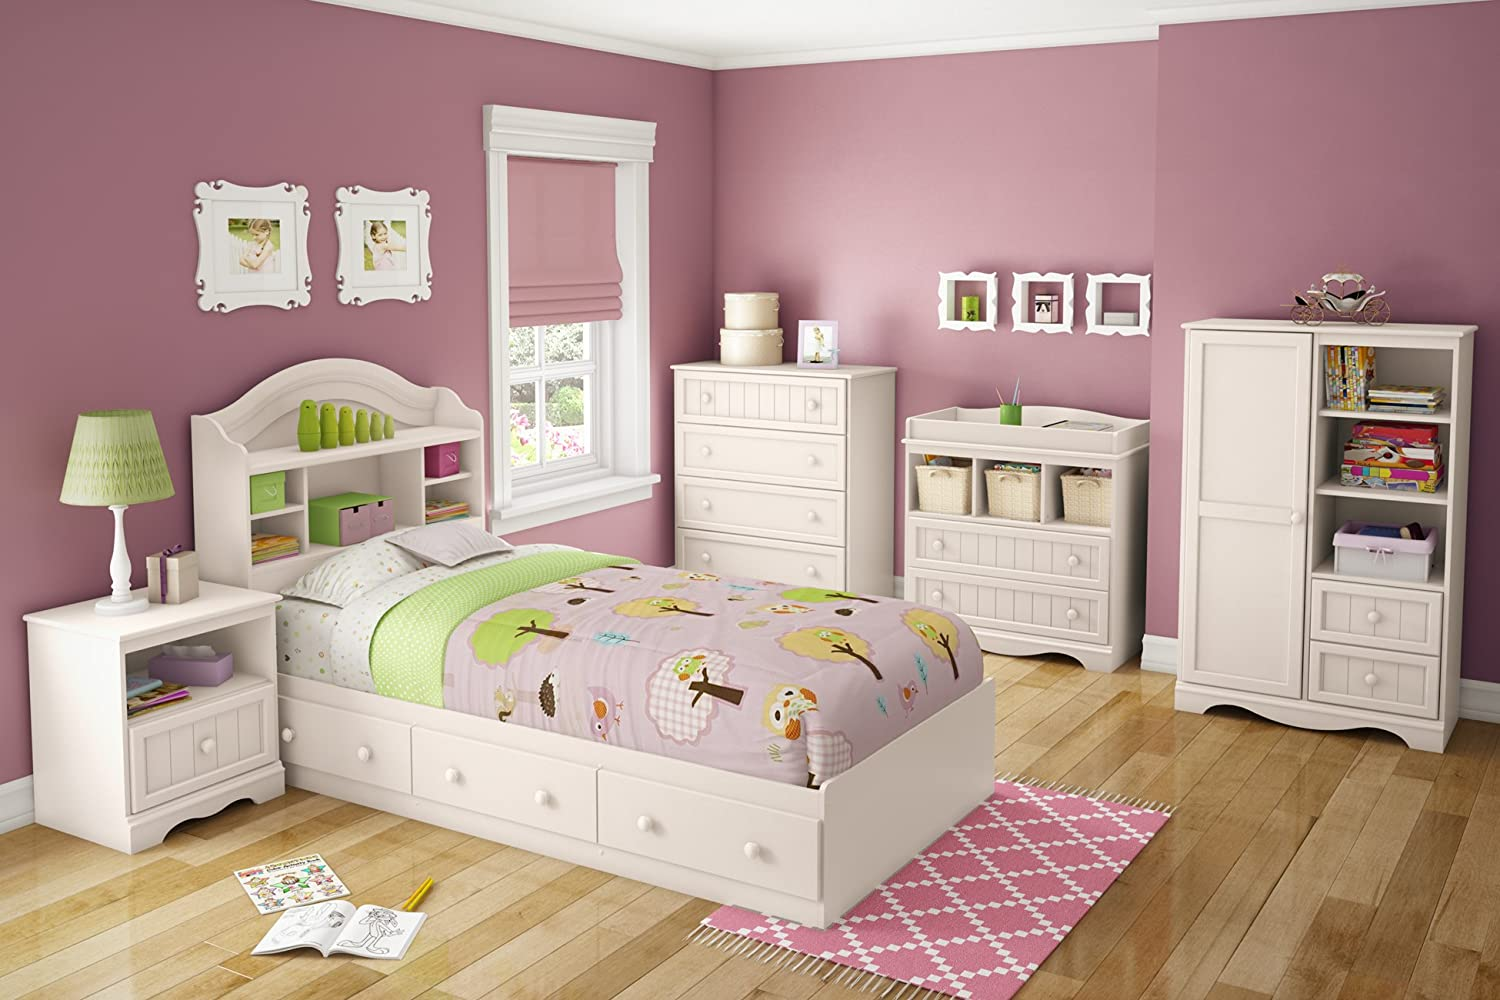 white bedroom sets. Amazon.com: South Shore Savannah Collection Twin Bed, Pure White: Kitchen \u0026 Dining White Bedroom Sets